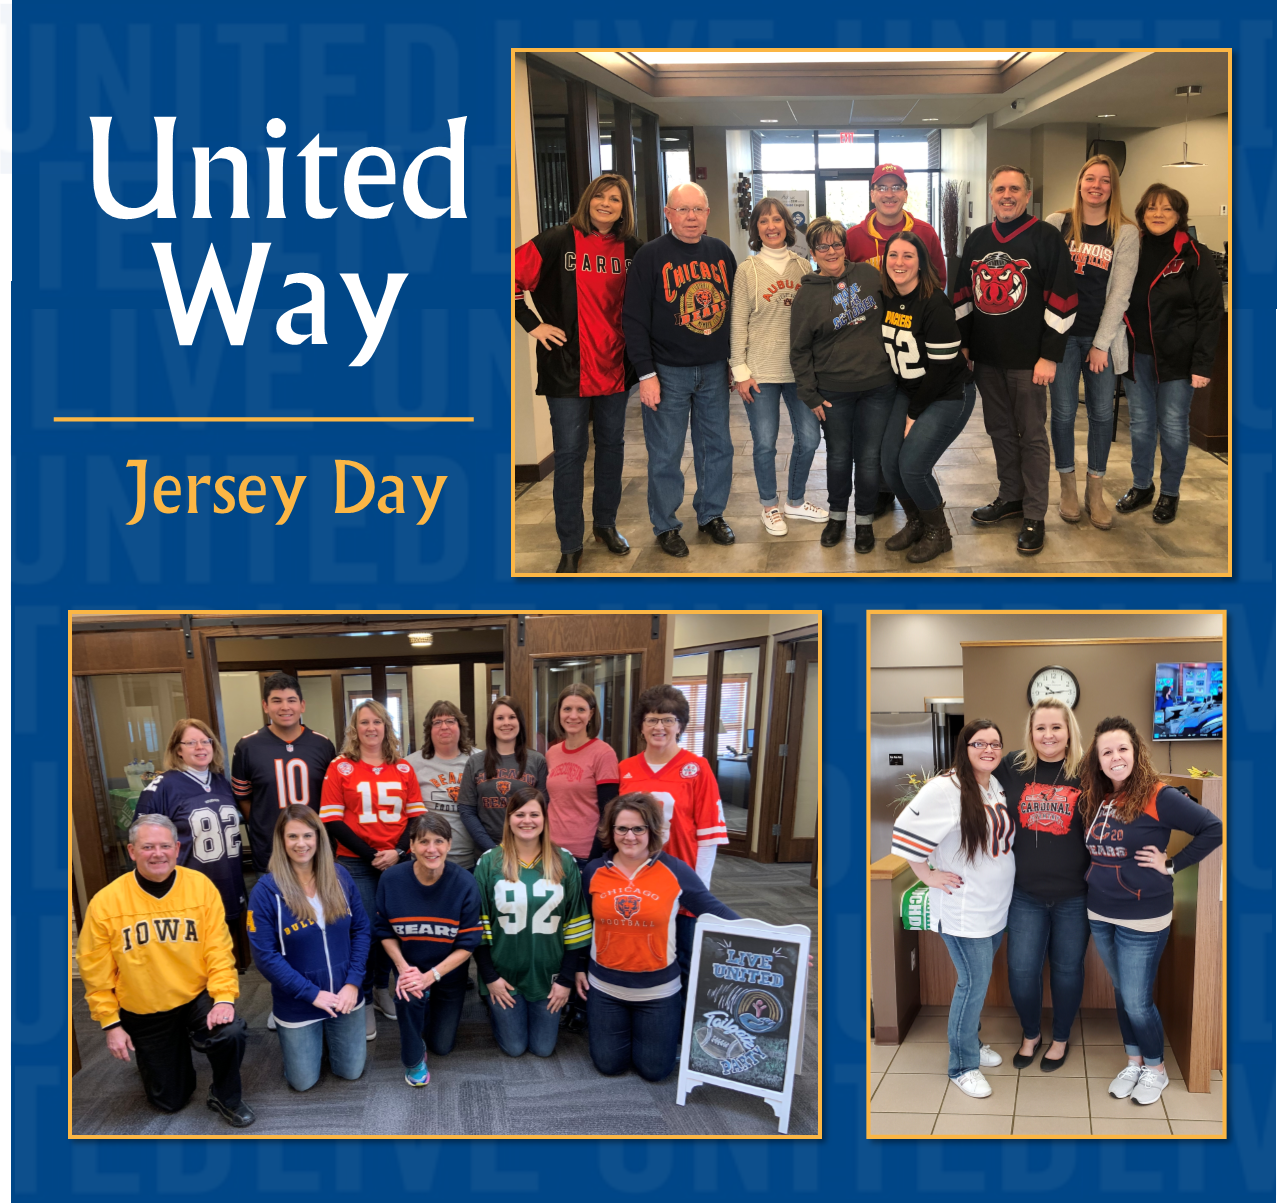 United Way Jersey Day